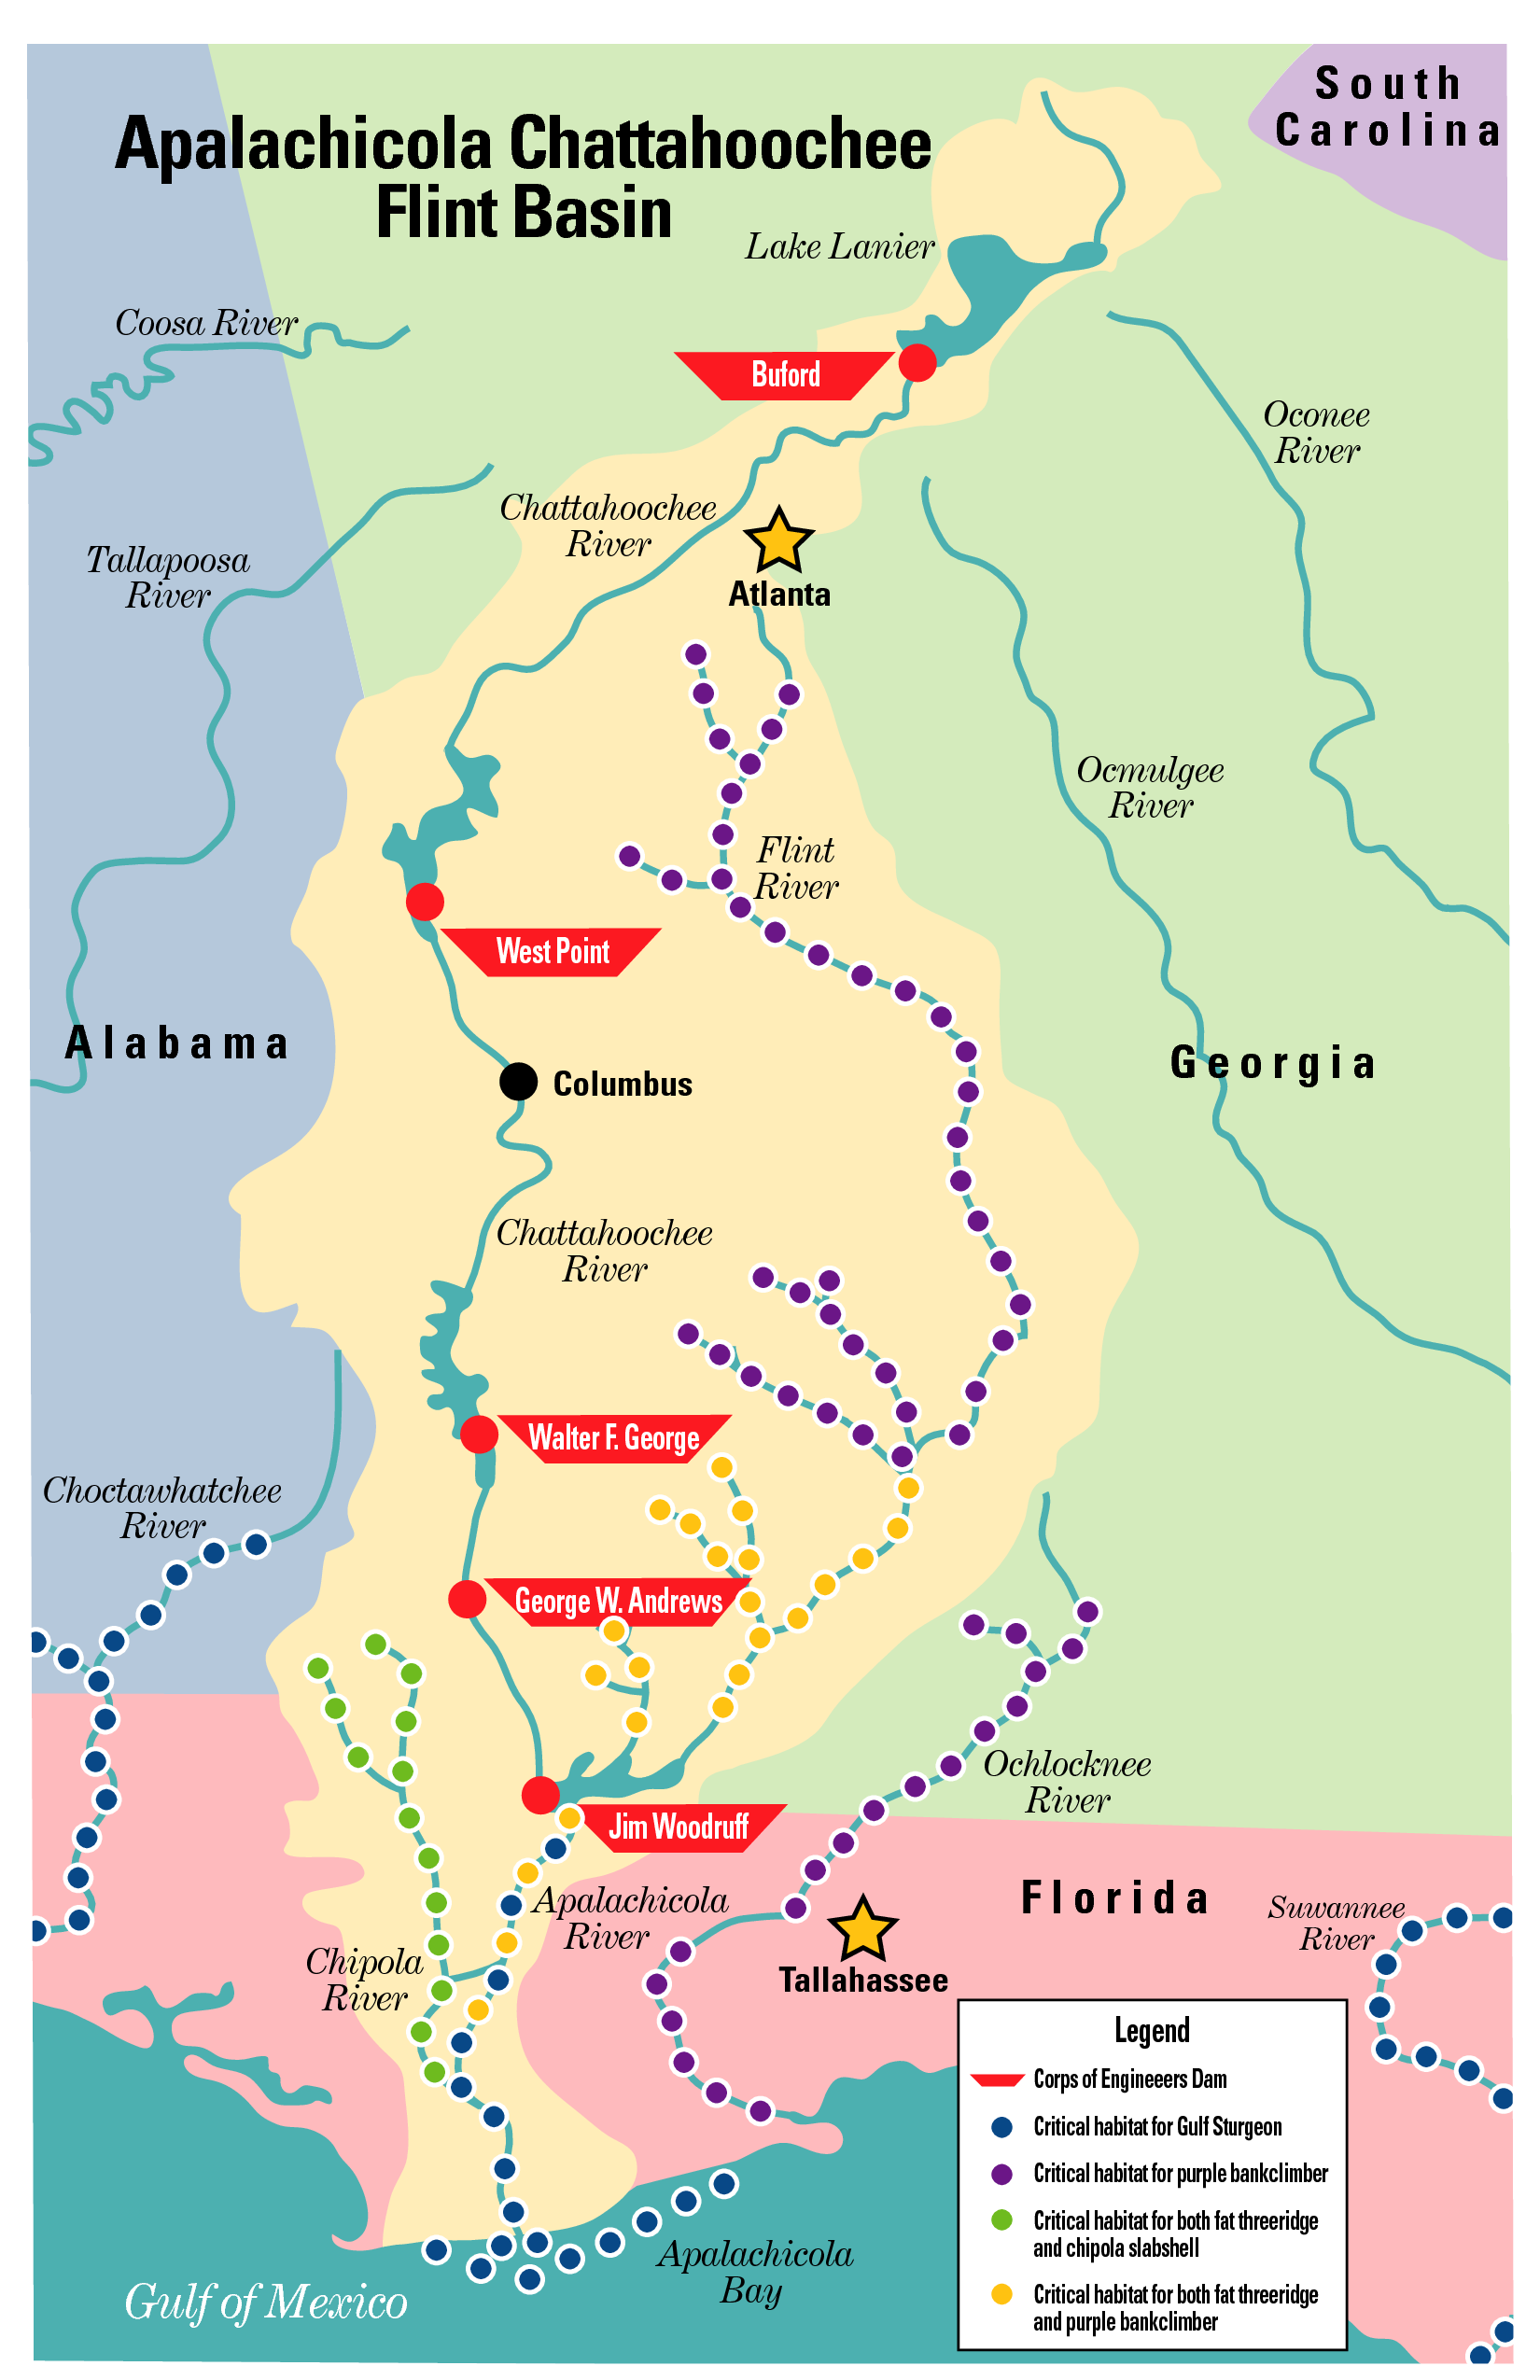 the legal fight between florida and georgia over water flow into theapalachicola river will move before the full us supreme court. supreme court wades into water wars  southeast agnet